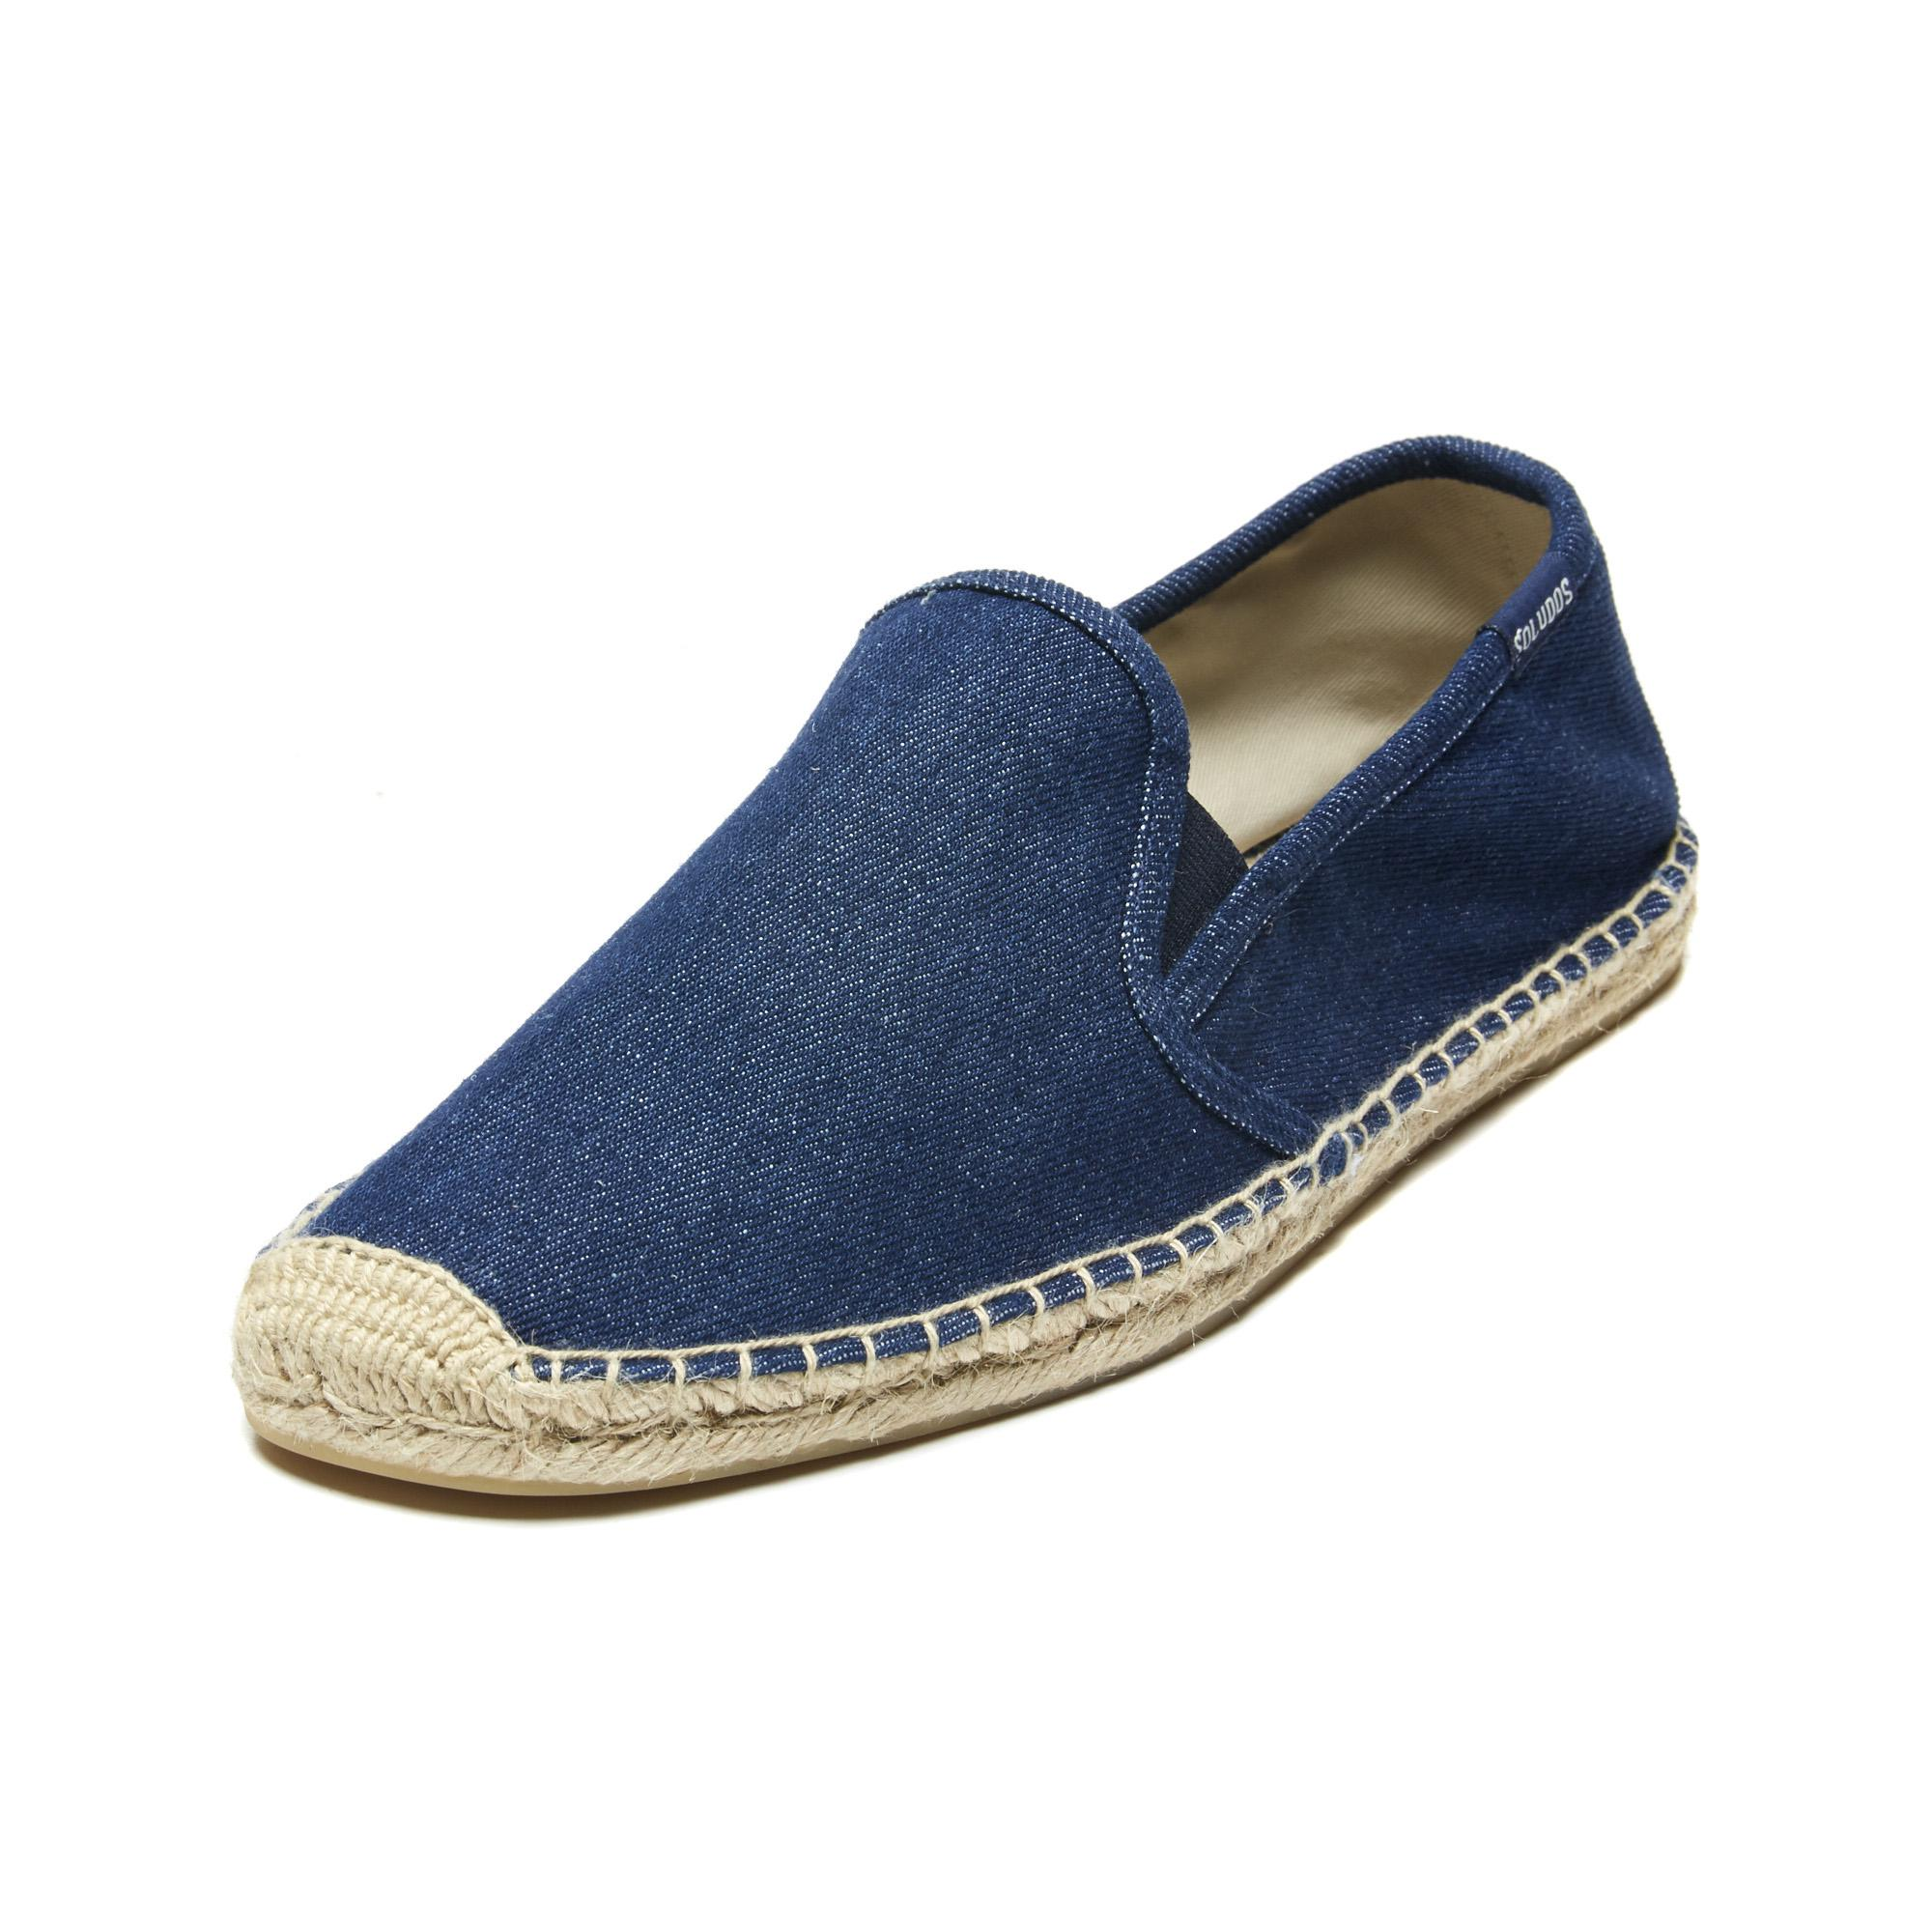 510a6bb18256 Lyst - Soludos Men s Casual Classic Smoking Slipper in Blue for Men